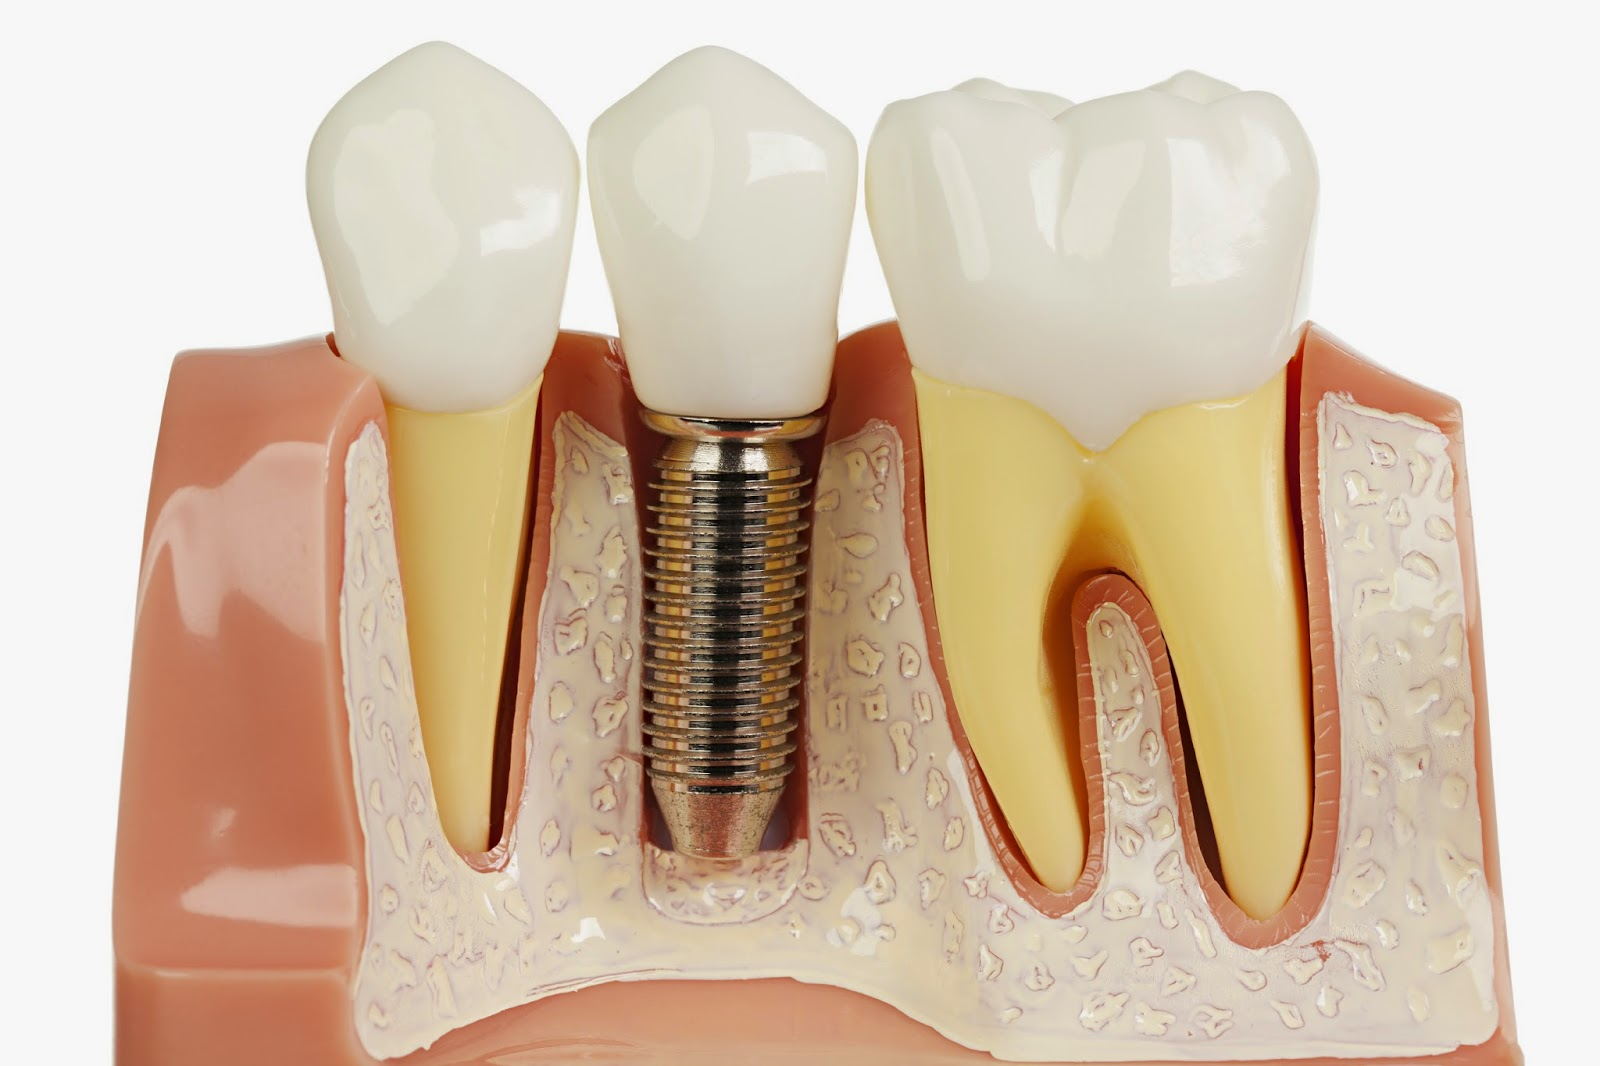 Ask your dentist if you qualify for dental implants